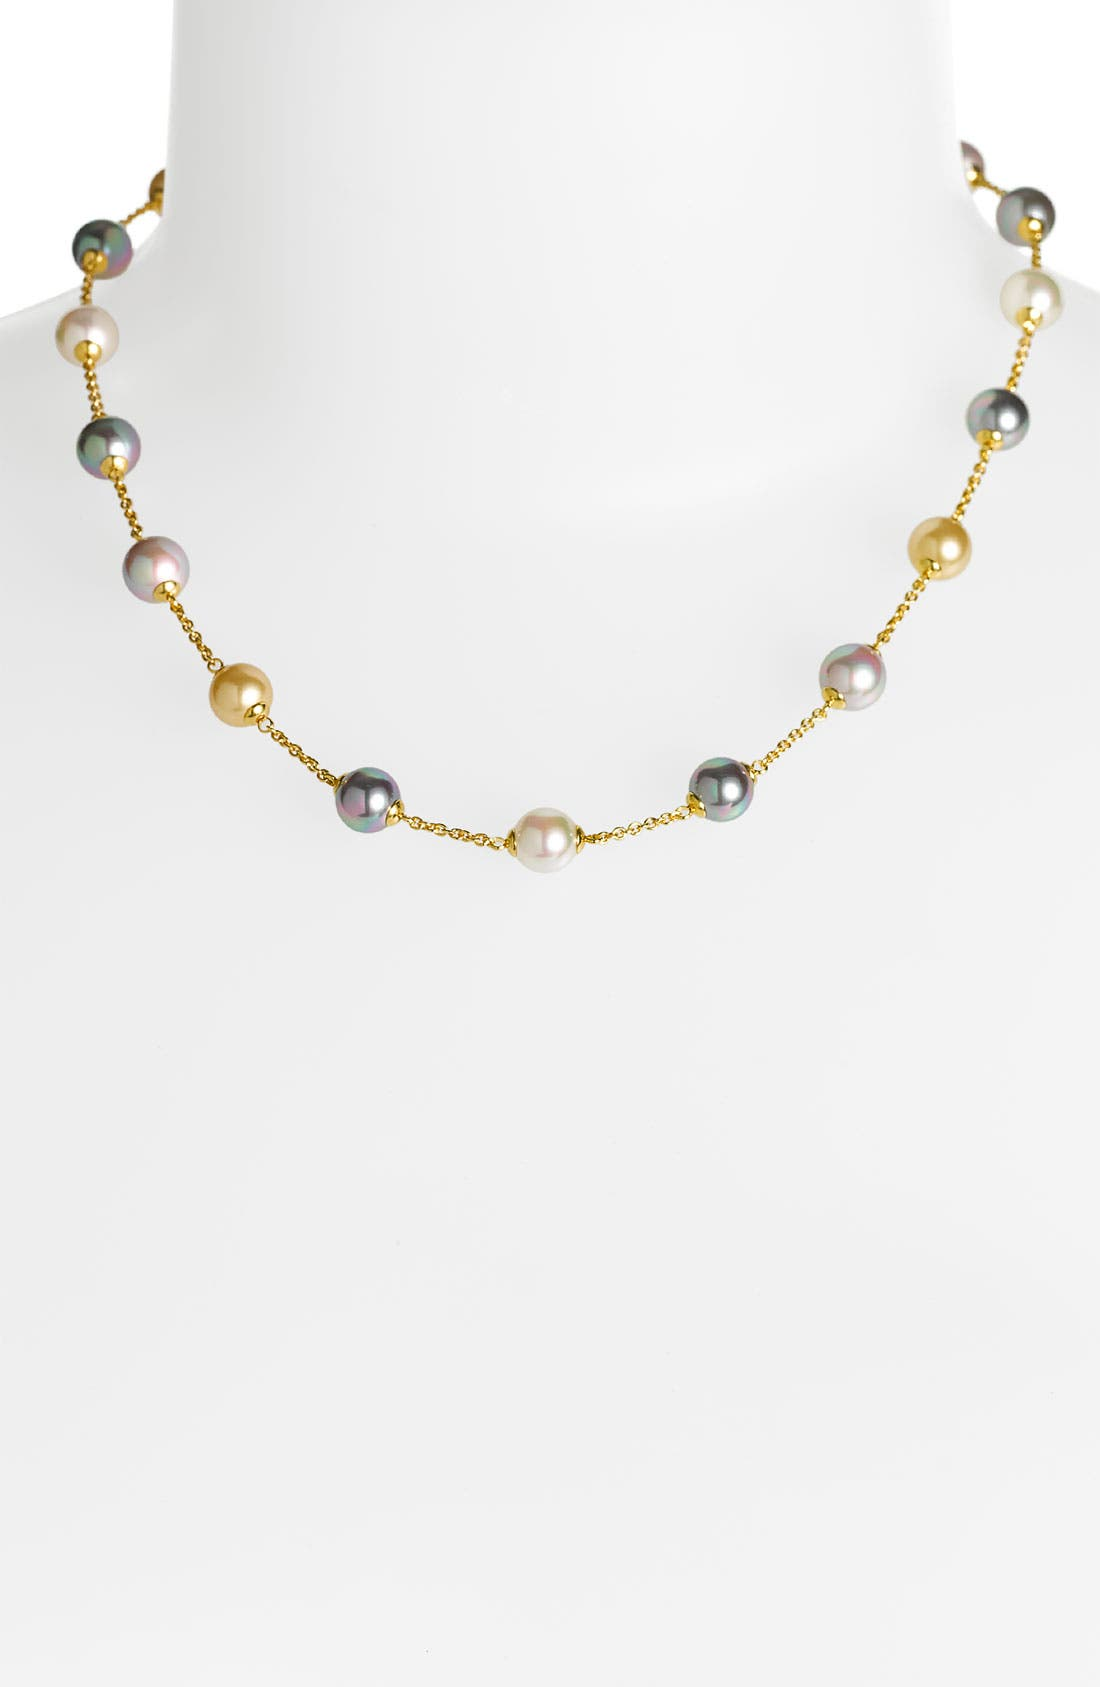 8mm Pearl Station Necklace,                             Alternate thumbnail 2, color,                             GOLD/ CHAMPAGNE